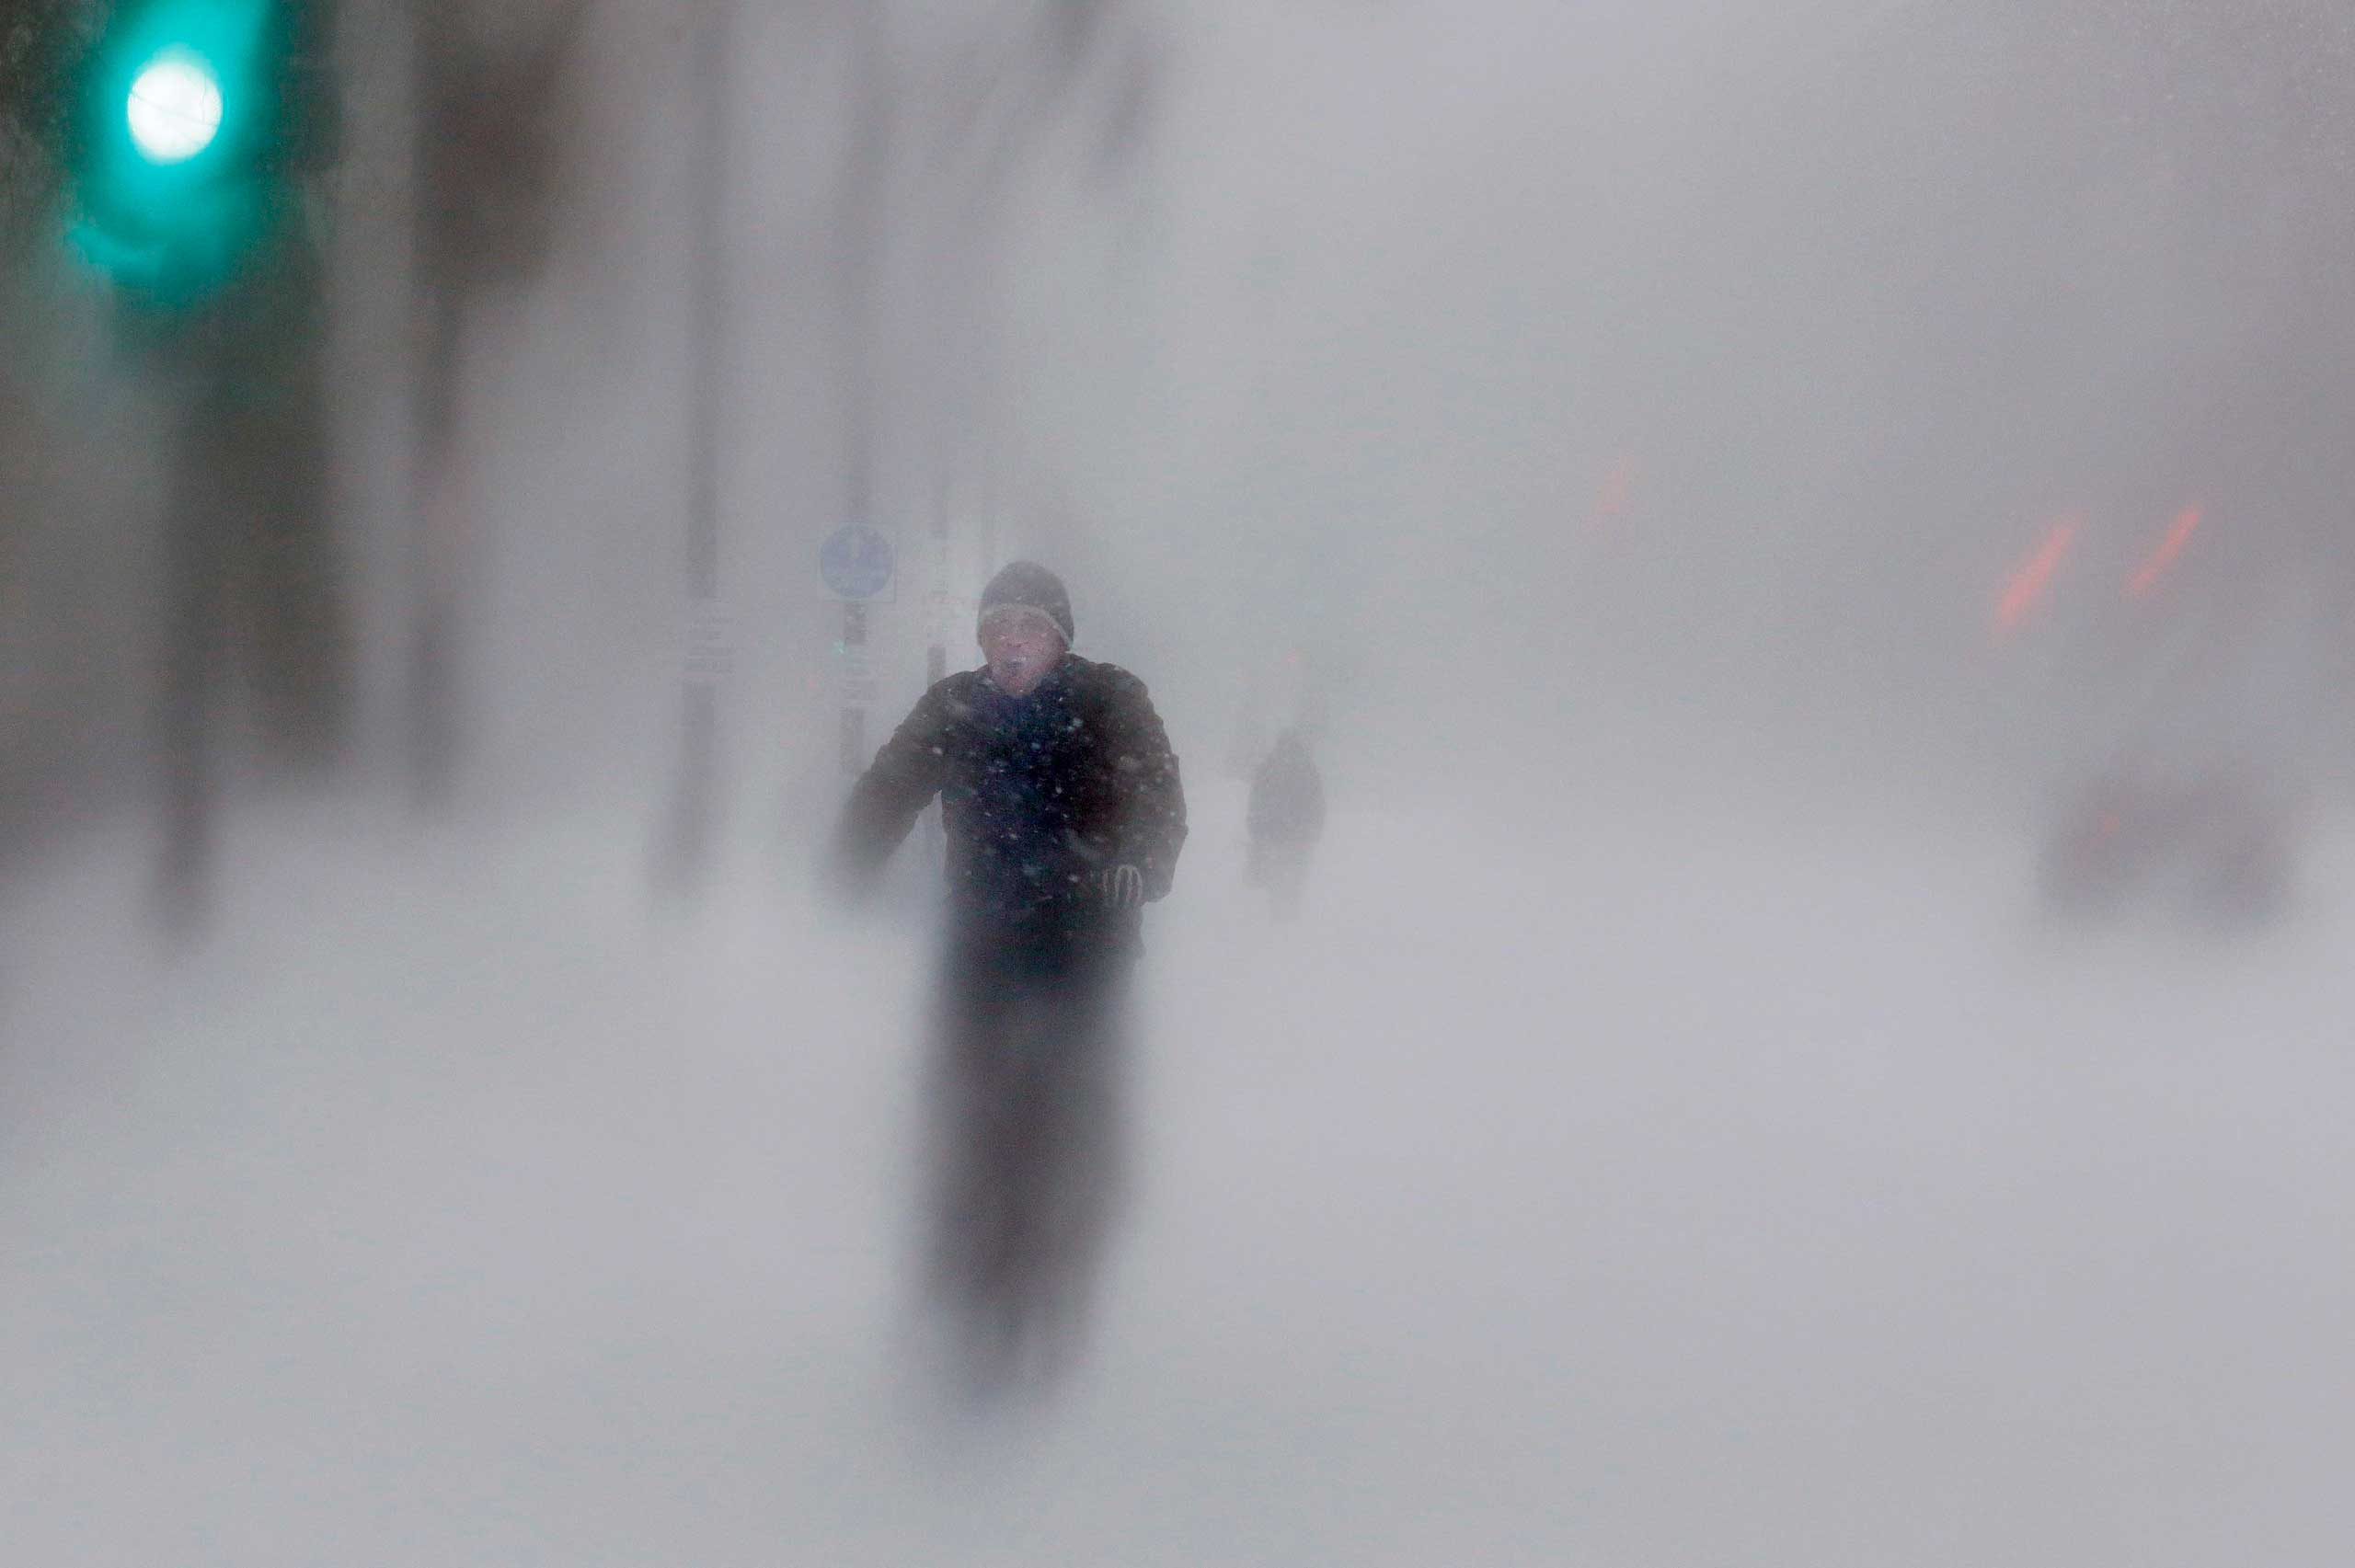 Jan. 27, 2015. A man rides his bike up Beacon Street during a blizzard in Boston, Mass. A blizzard swept across the northeastern U.S., dropping more than a foot of snow across Massachusetts and Connecticut.